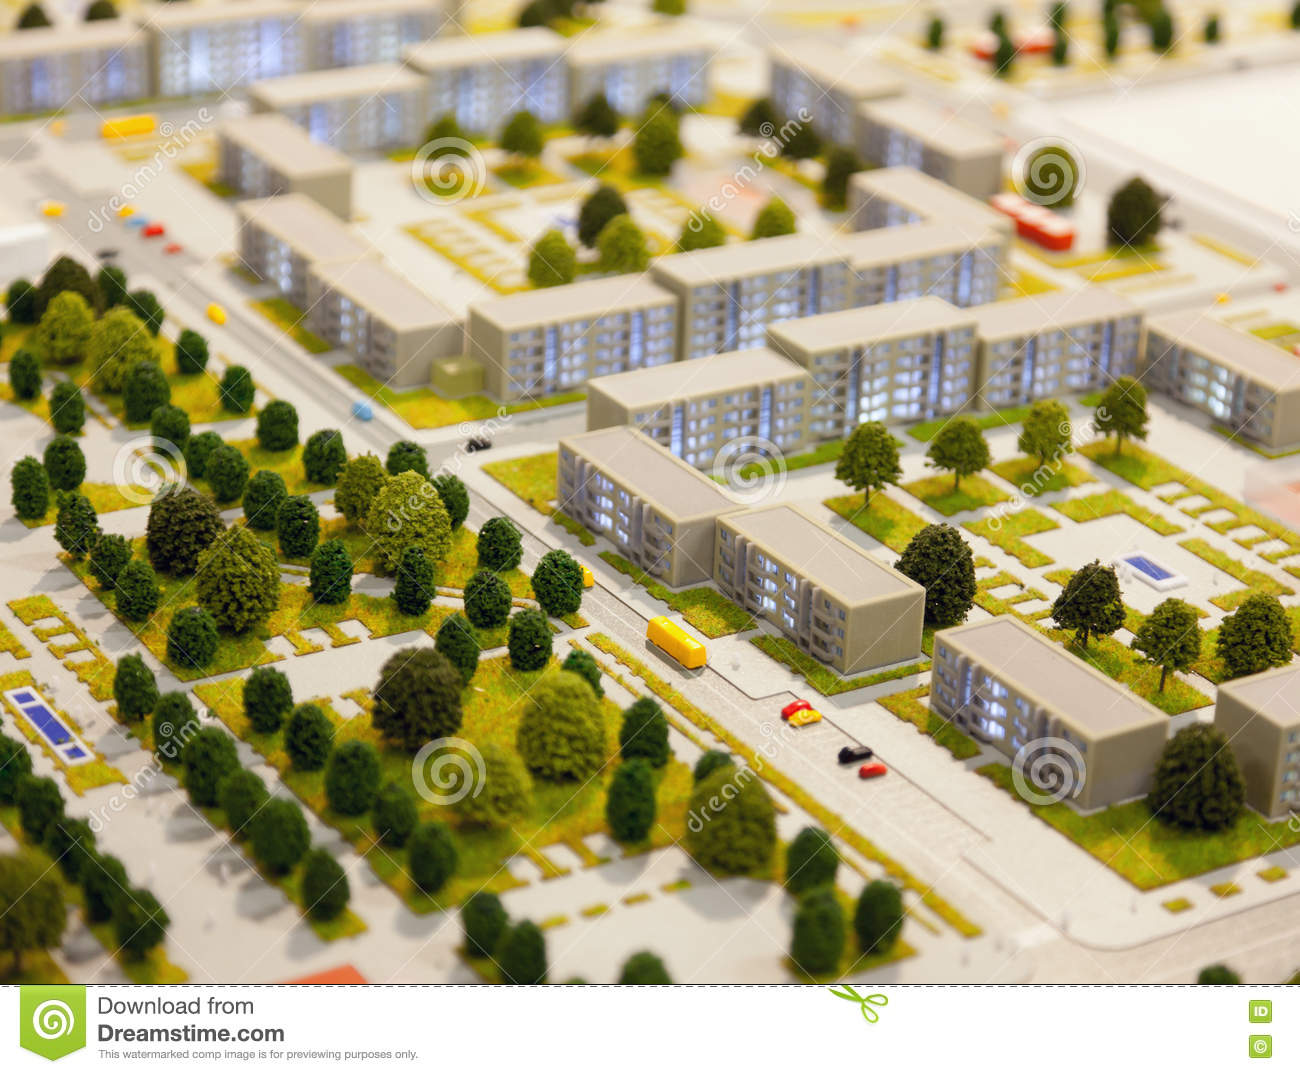 Stock Images Architectural Model City District Tilt Shift Effect Image34416794 on sustainable landscape graphics